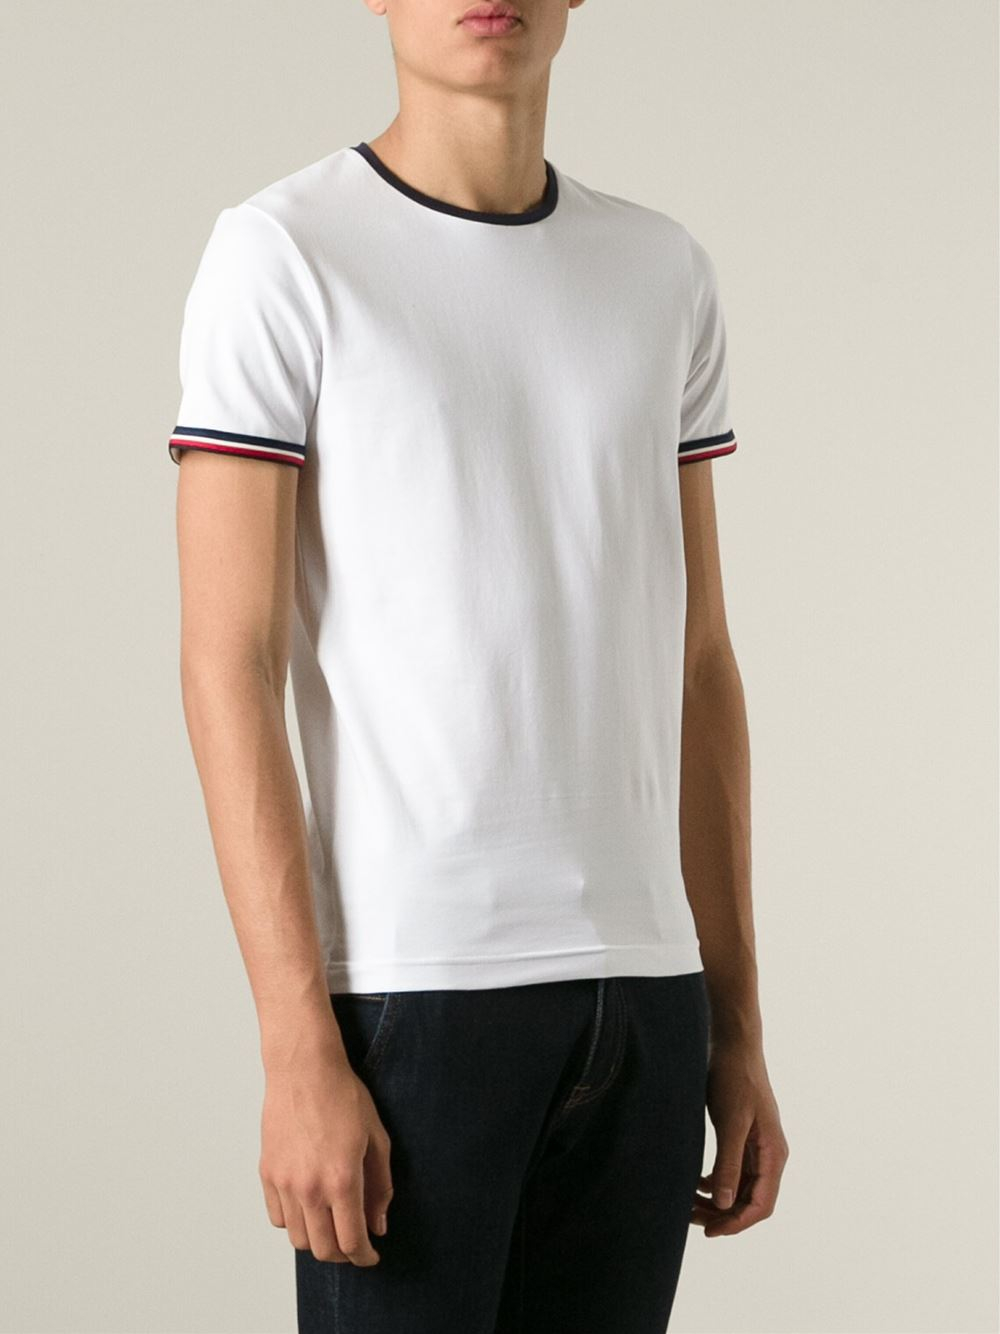 323428cd2 Lyst - Moncler Striped Trim T-Shirt in White for Men